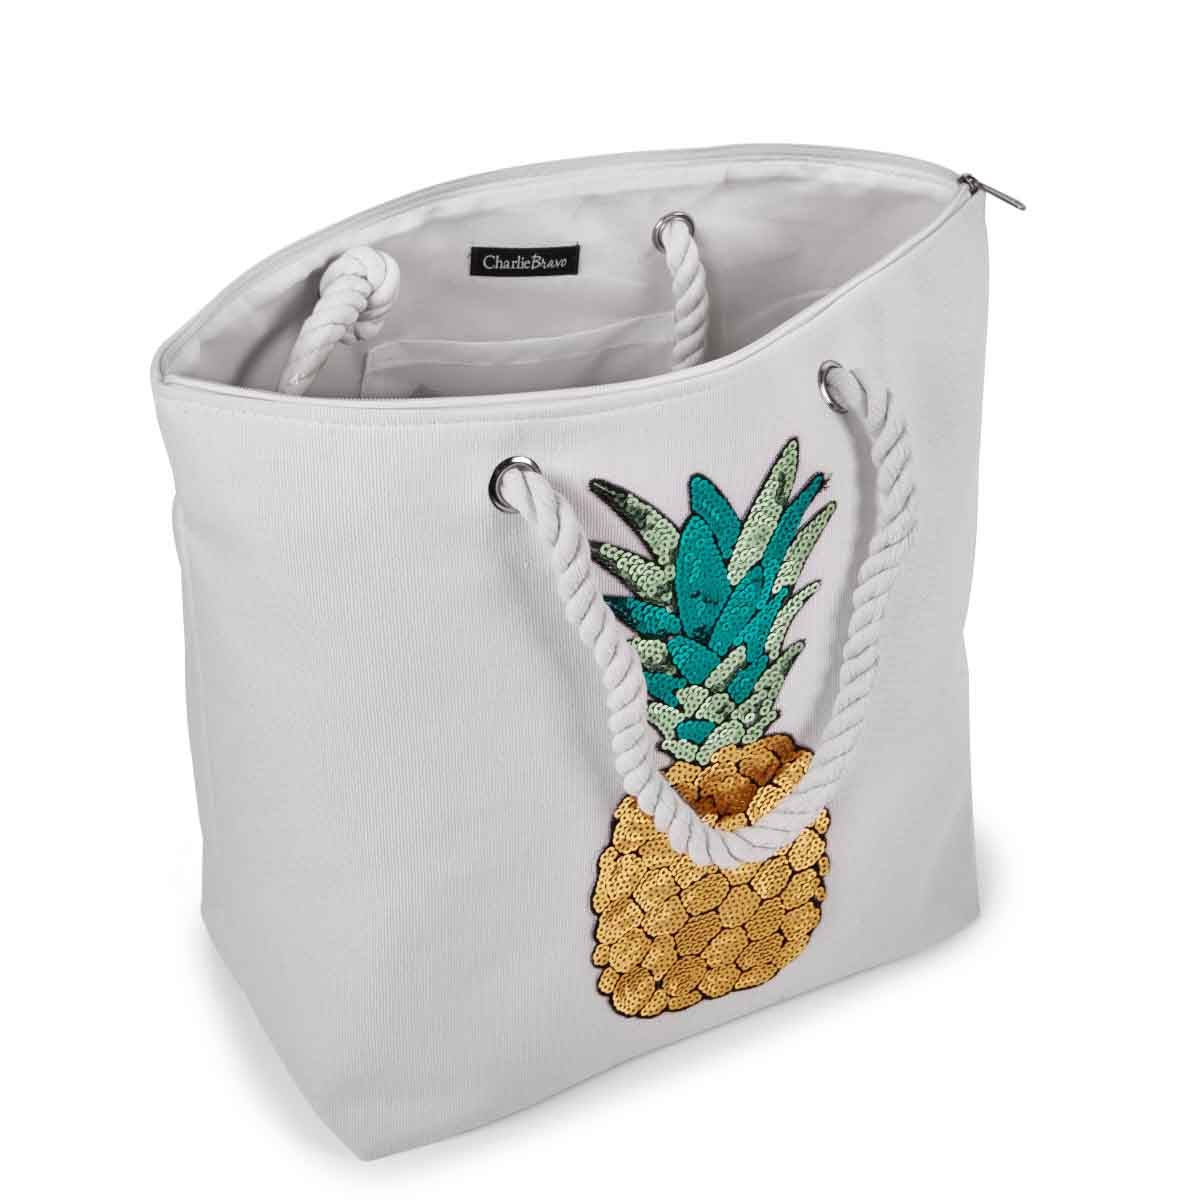 Lds wht pineapple large canvas tote bag